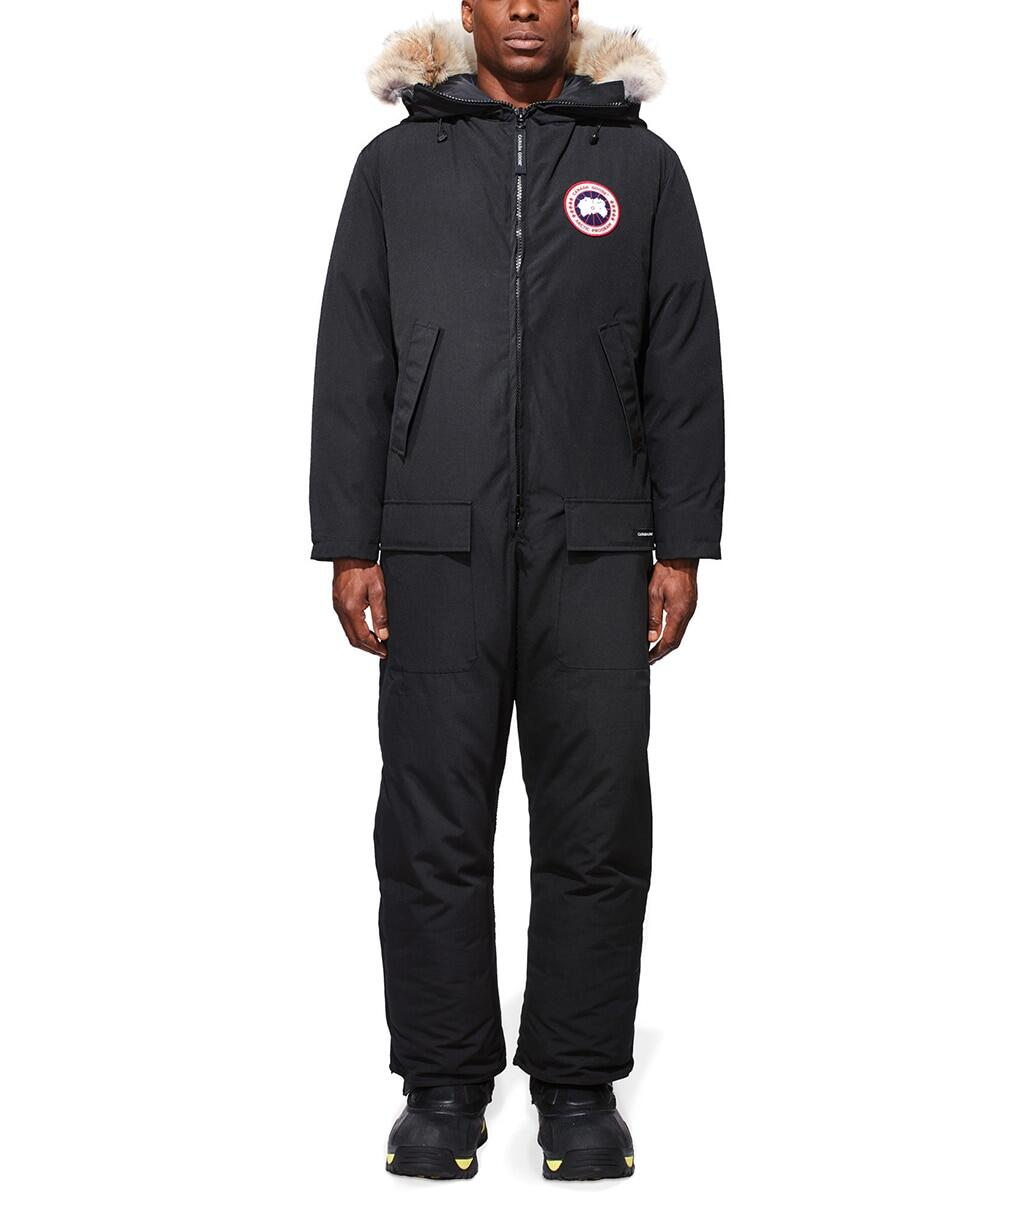 ARCTIC RIGGER COVERALL